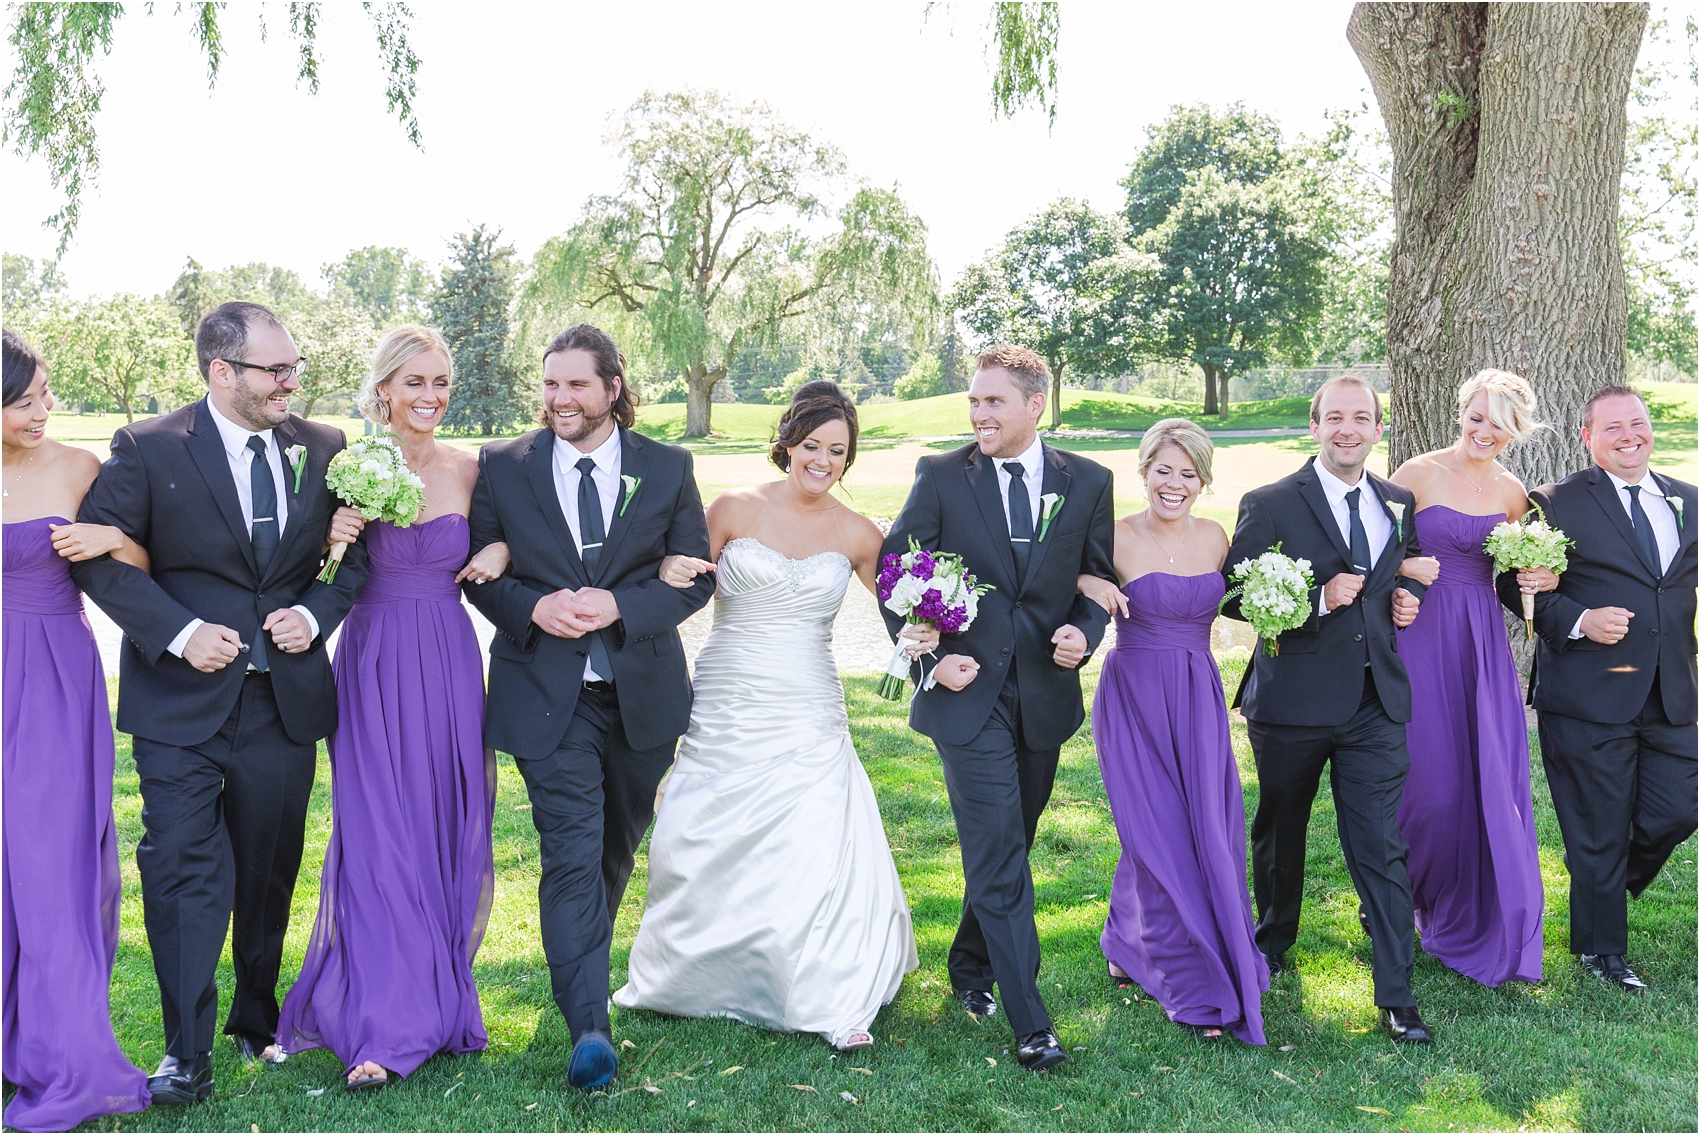 classic-wedding-photos-at-great-oaks-country-club-in-rochester-hills-mi-by-courtney-carolyn-photography_0054.jpg